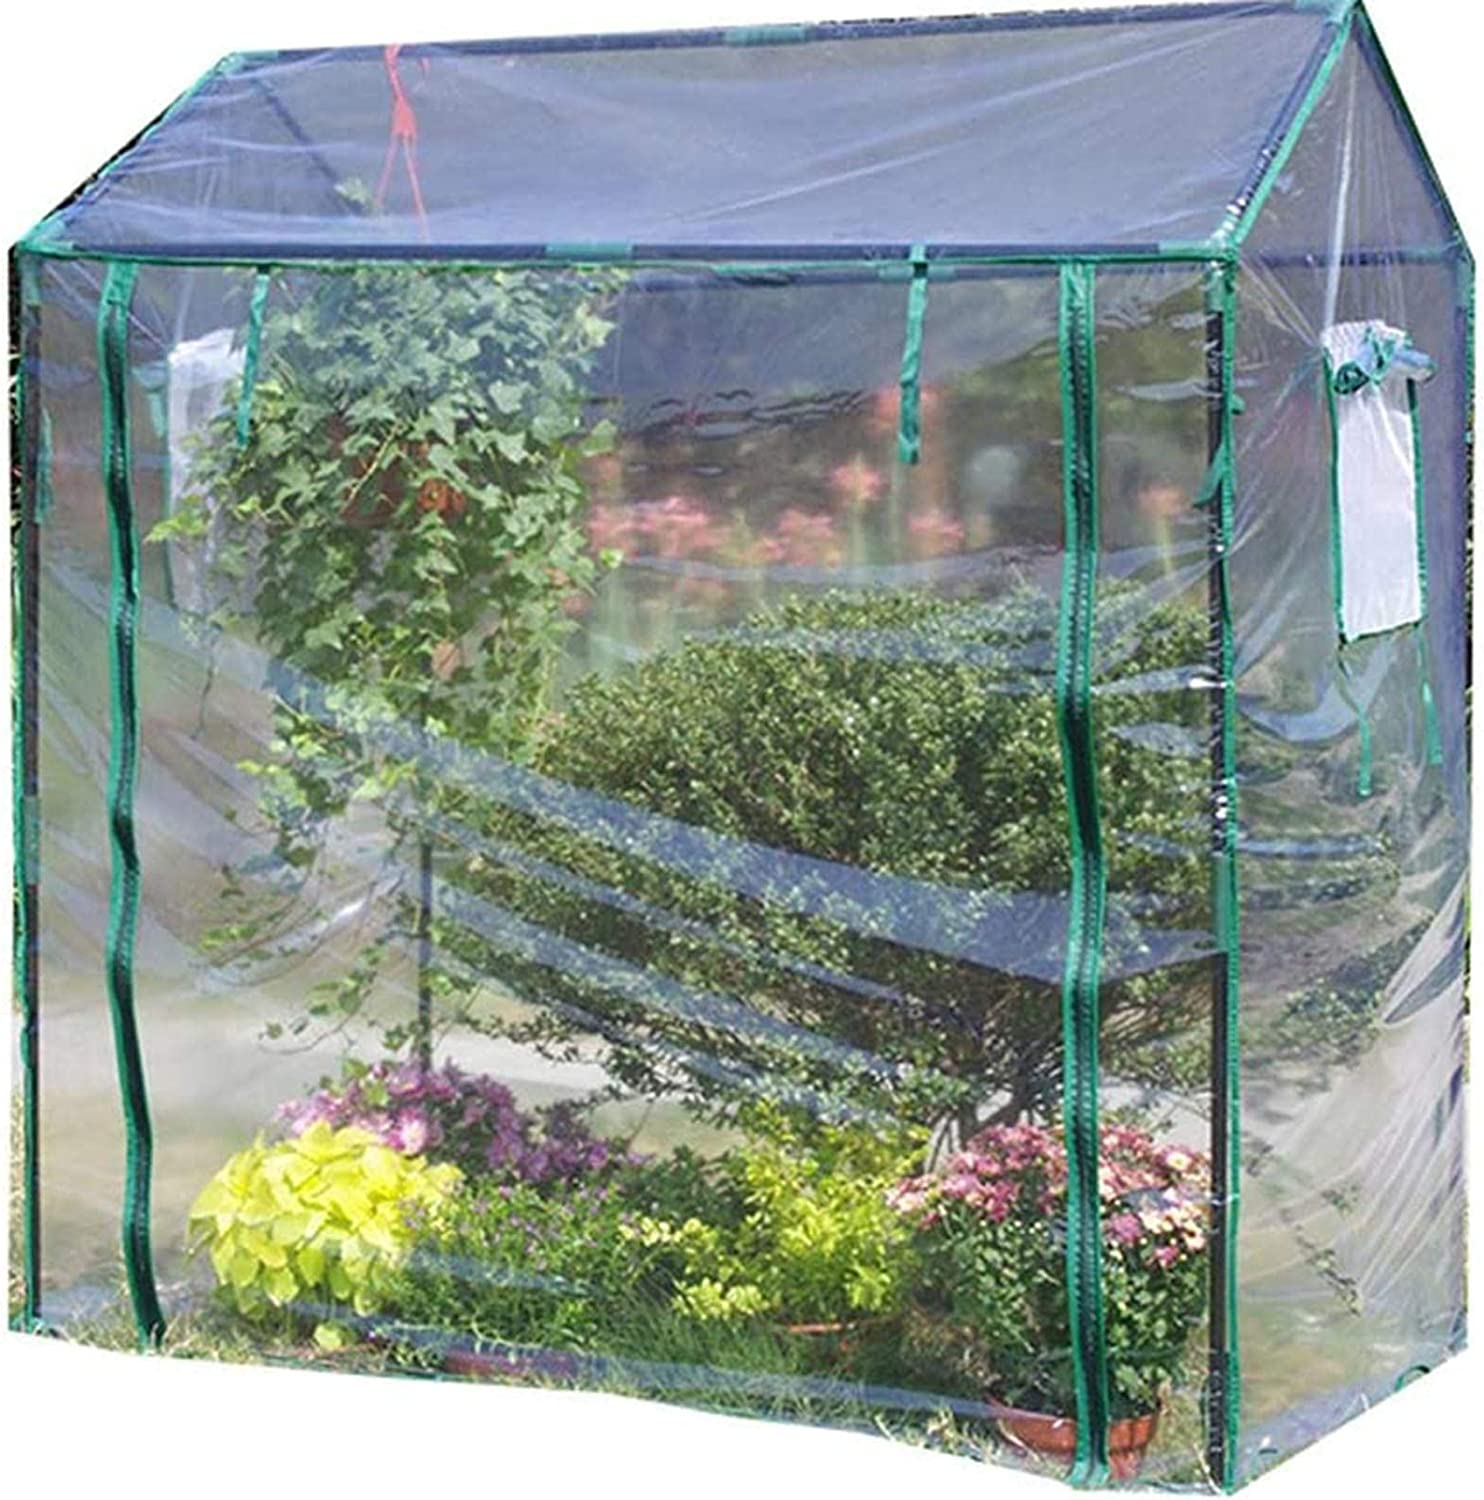 biliten Mini Walk-in Greenhouse Indoor Outdoor - Portable Plant Gardening Greenhouse (49.61L x 33.86W x 59.06H Inches), Grow Plant Herbs Flowers Hot House, Waterproof UV Protected Mini Greenhouse